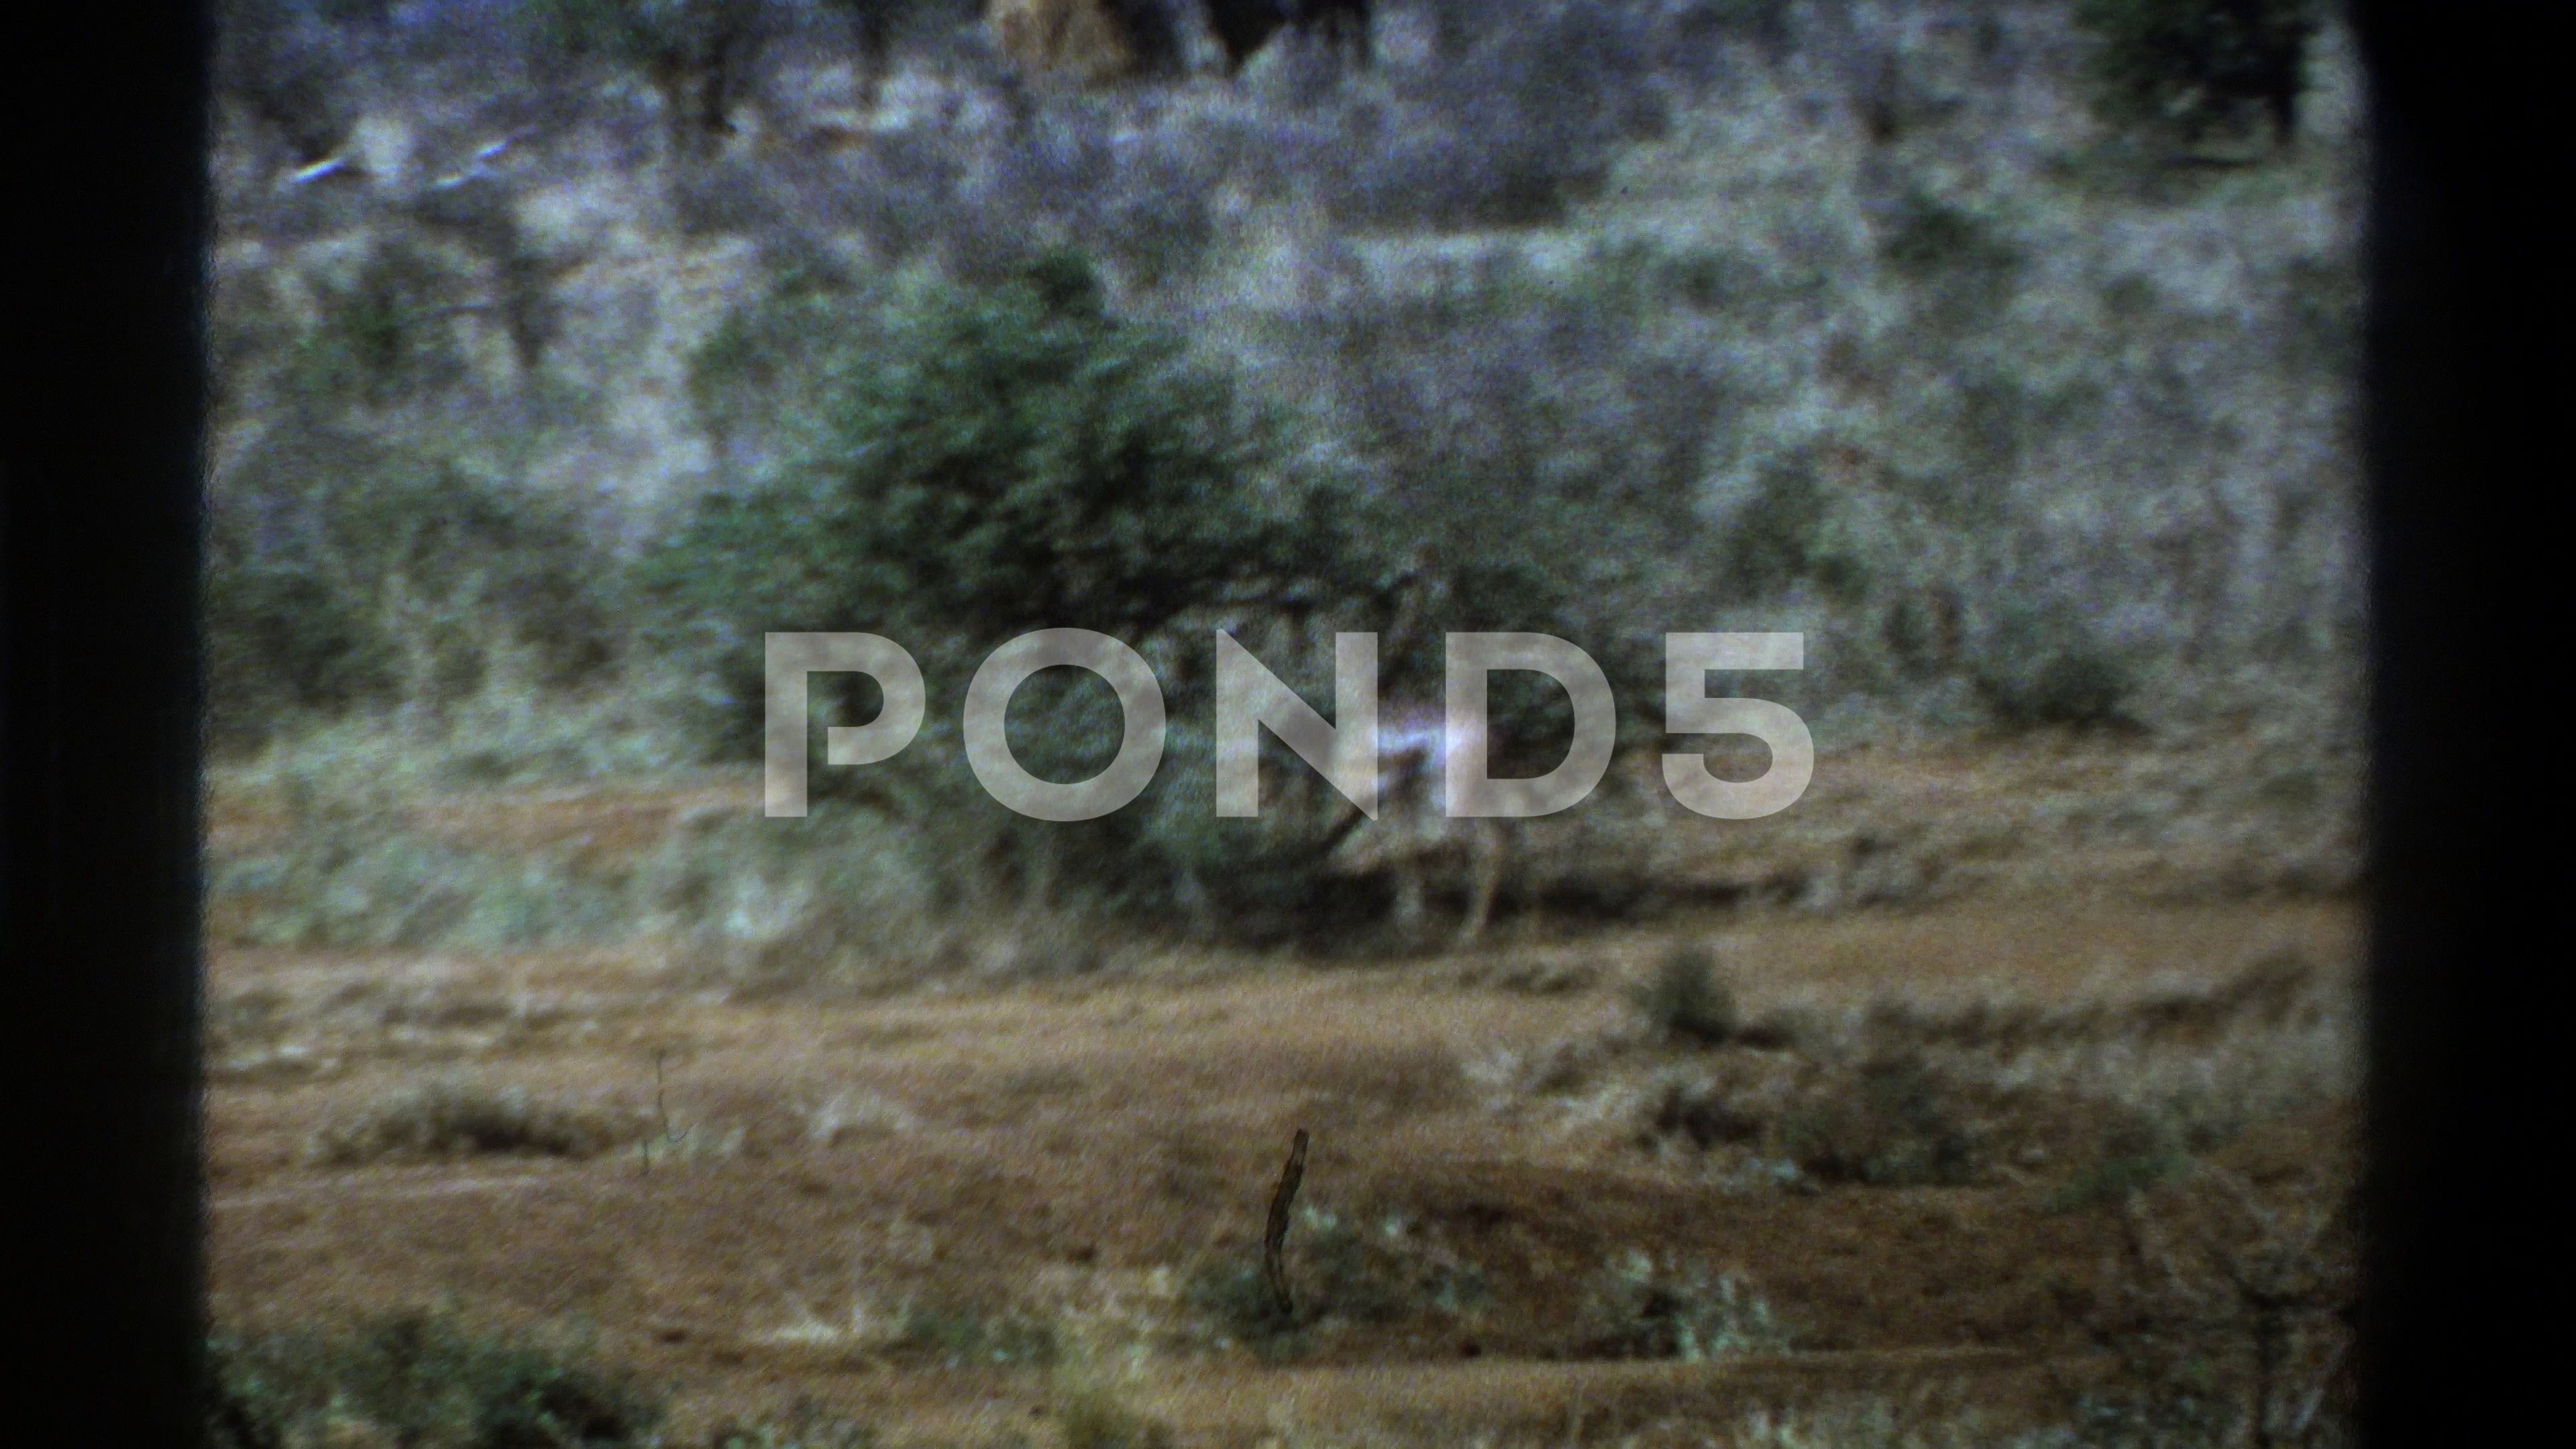 TOWN SOUTH AFRICA1969 An Animal Standing Near A Shrub In The Plains AFRICASOUTHCAPETOWNCAPE TOWN SOUTH AFRICA1969 An Animal Standing Near A Shrub In The Plains AFRICASOUT...